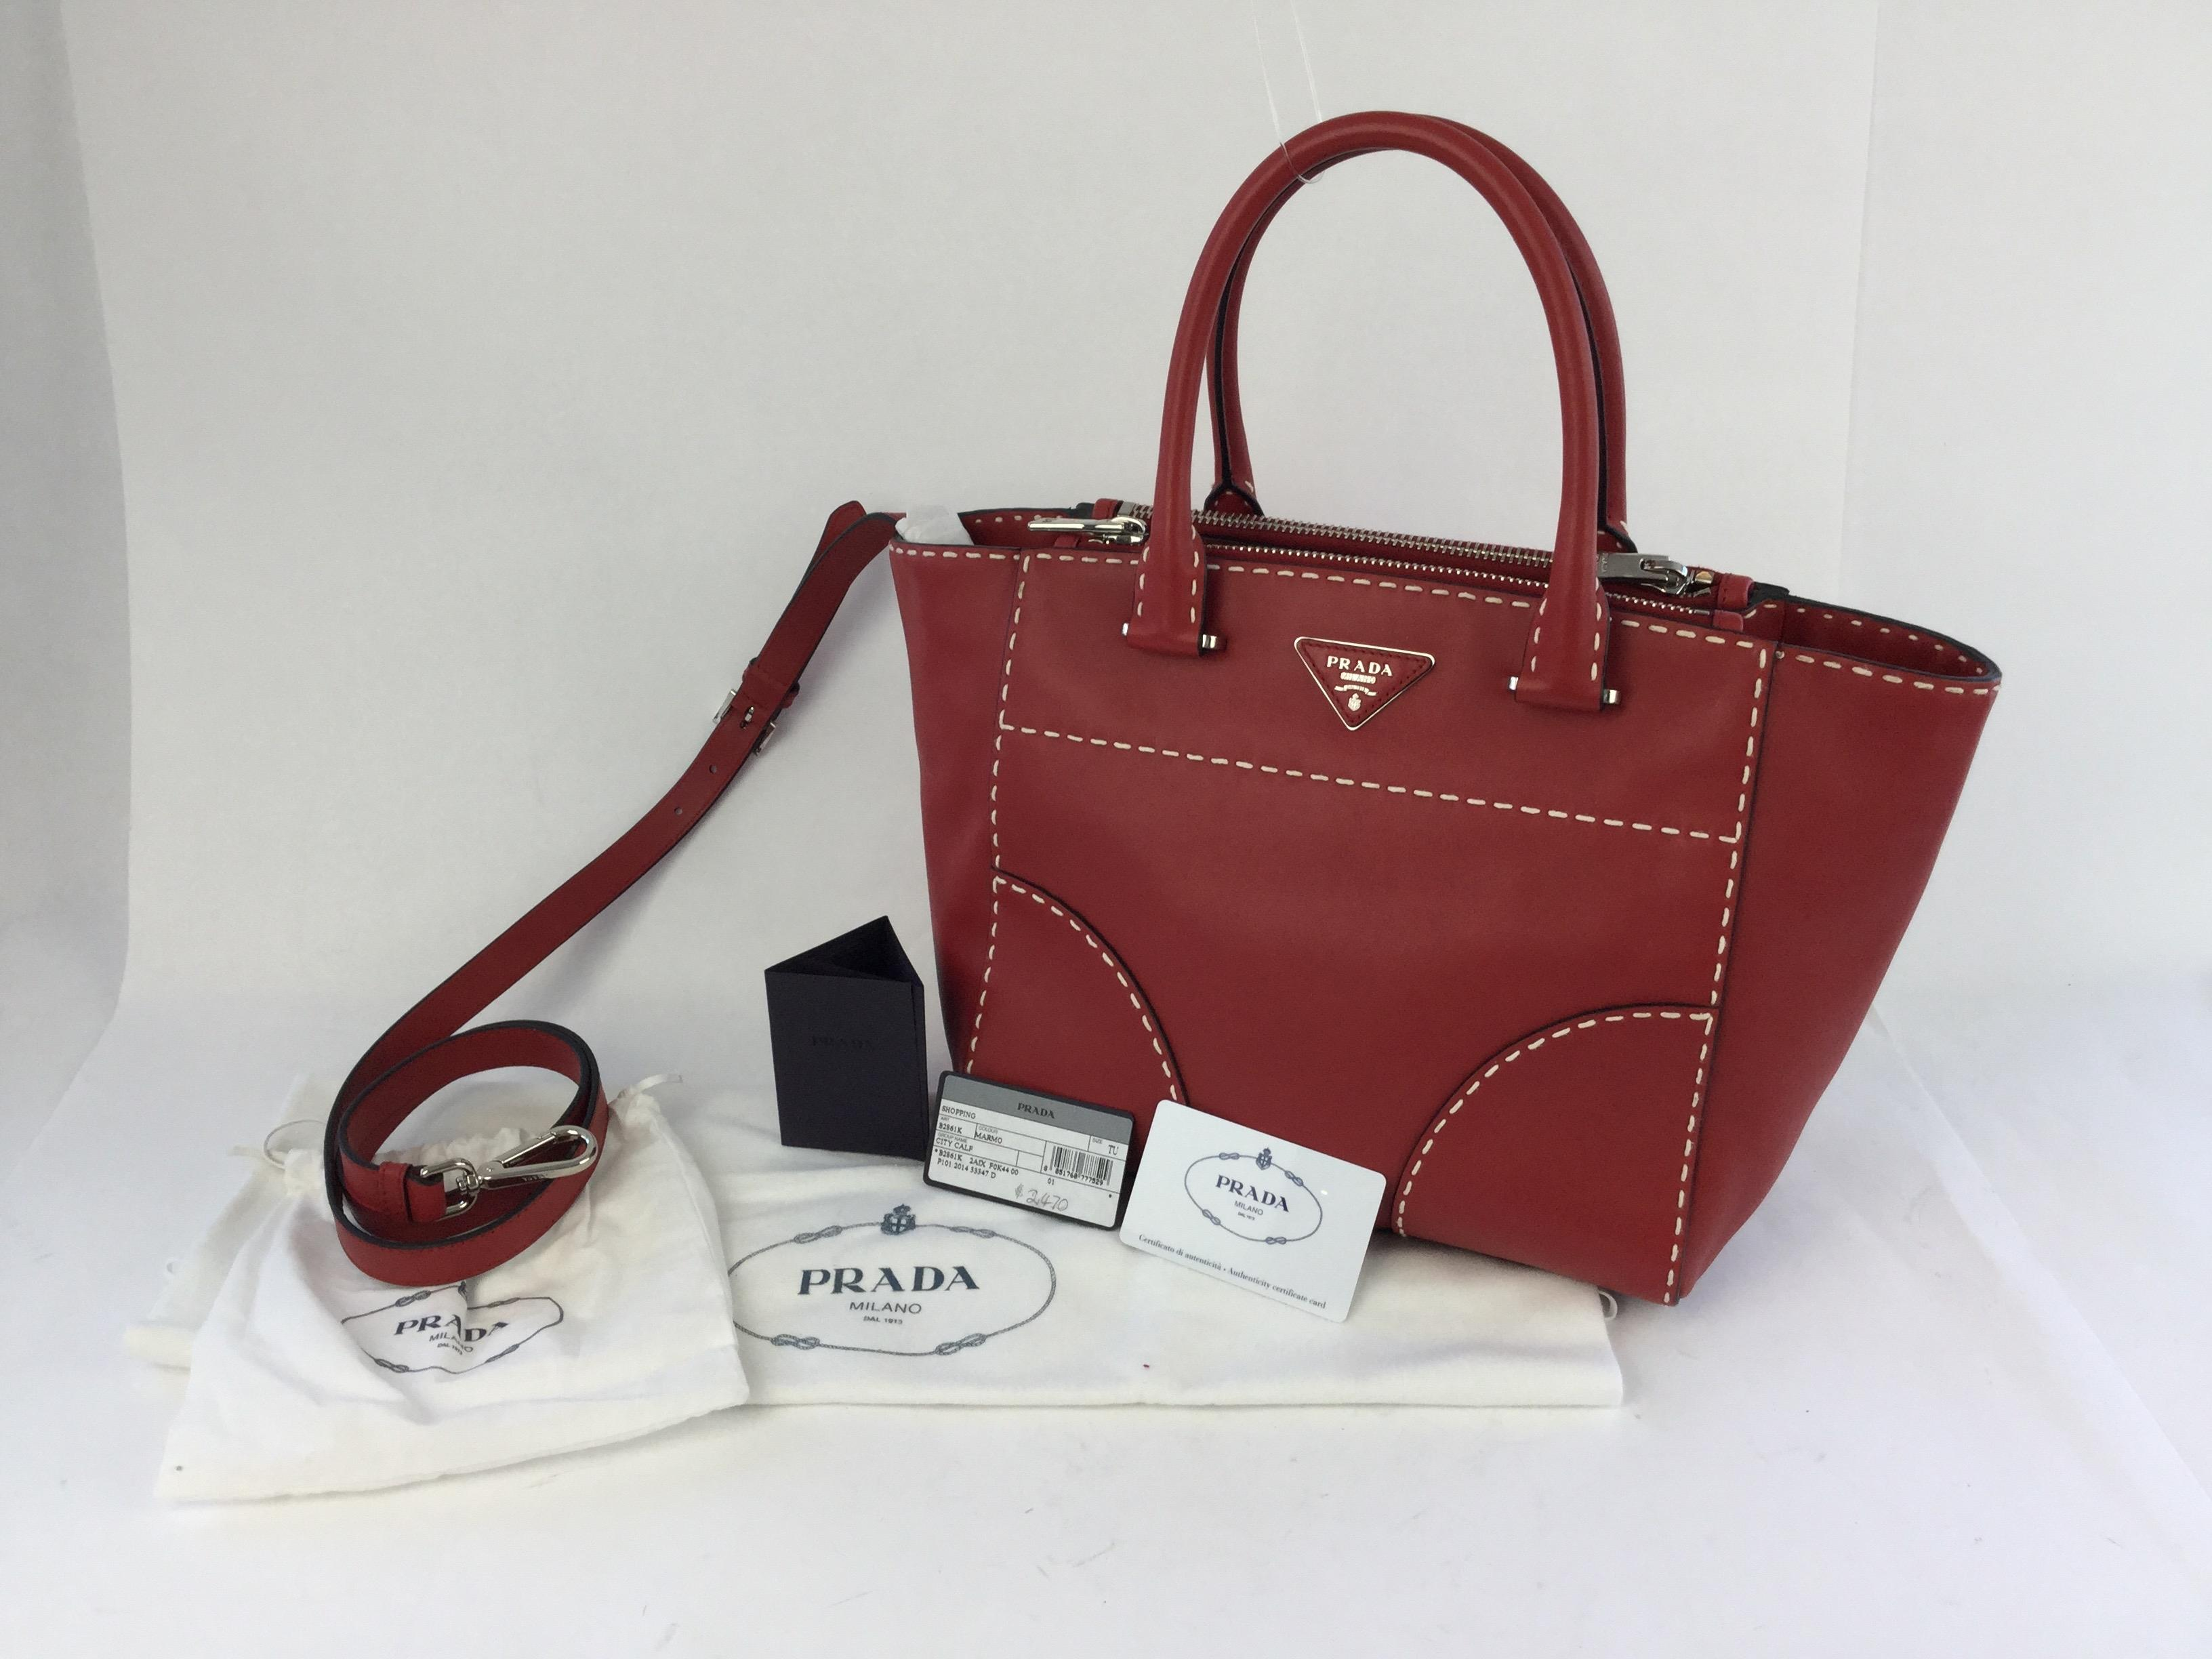 b30285e25404 91806 22d56; closeout prada city calf topstitched tote in red.  123456789101112 0110b f8157